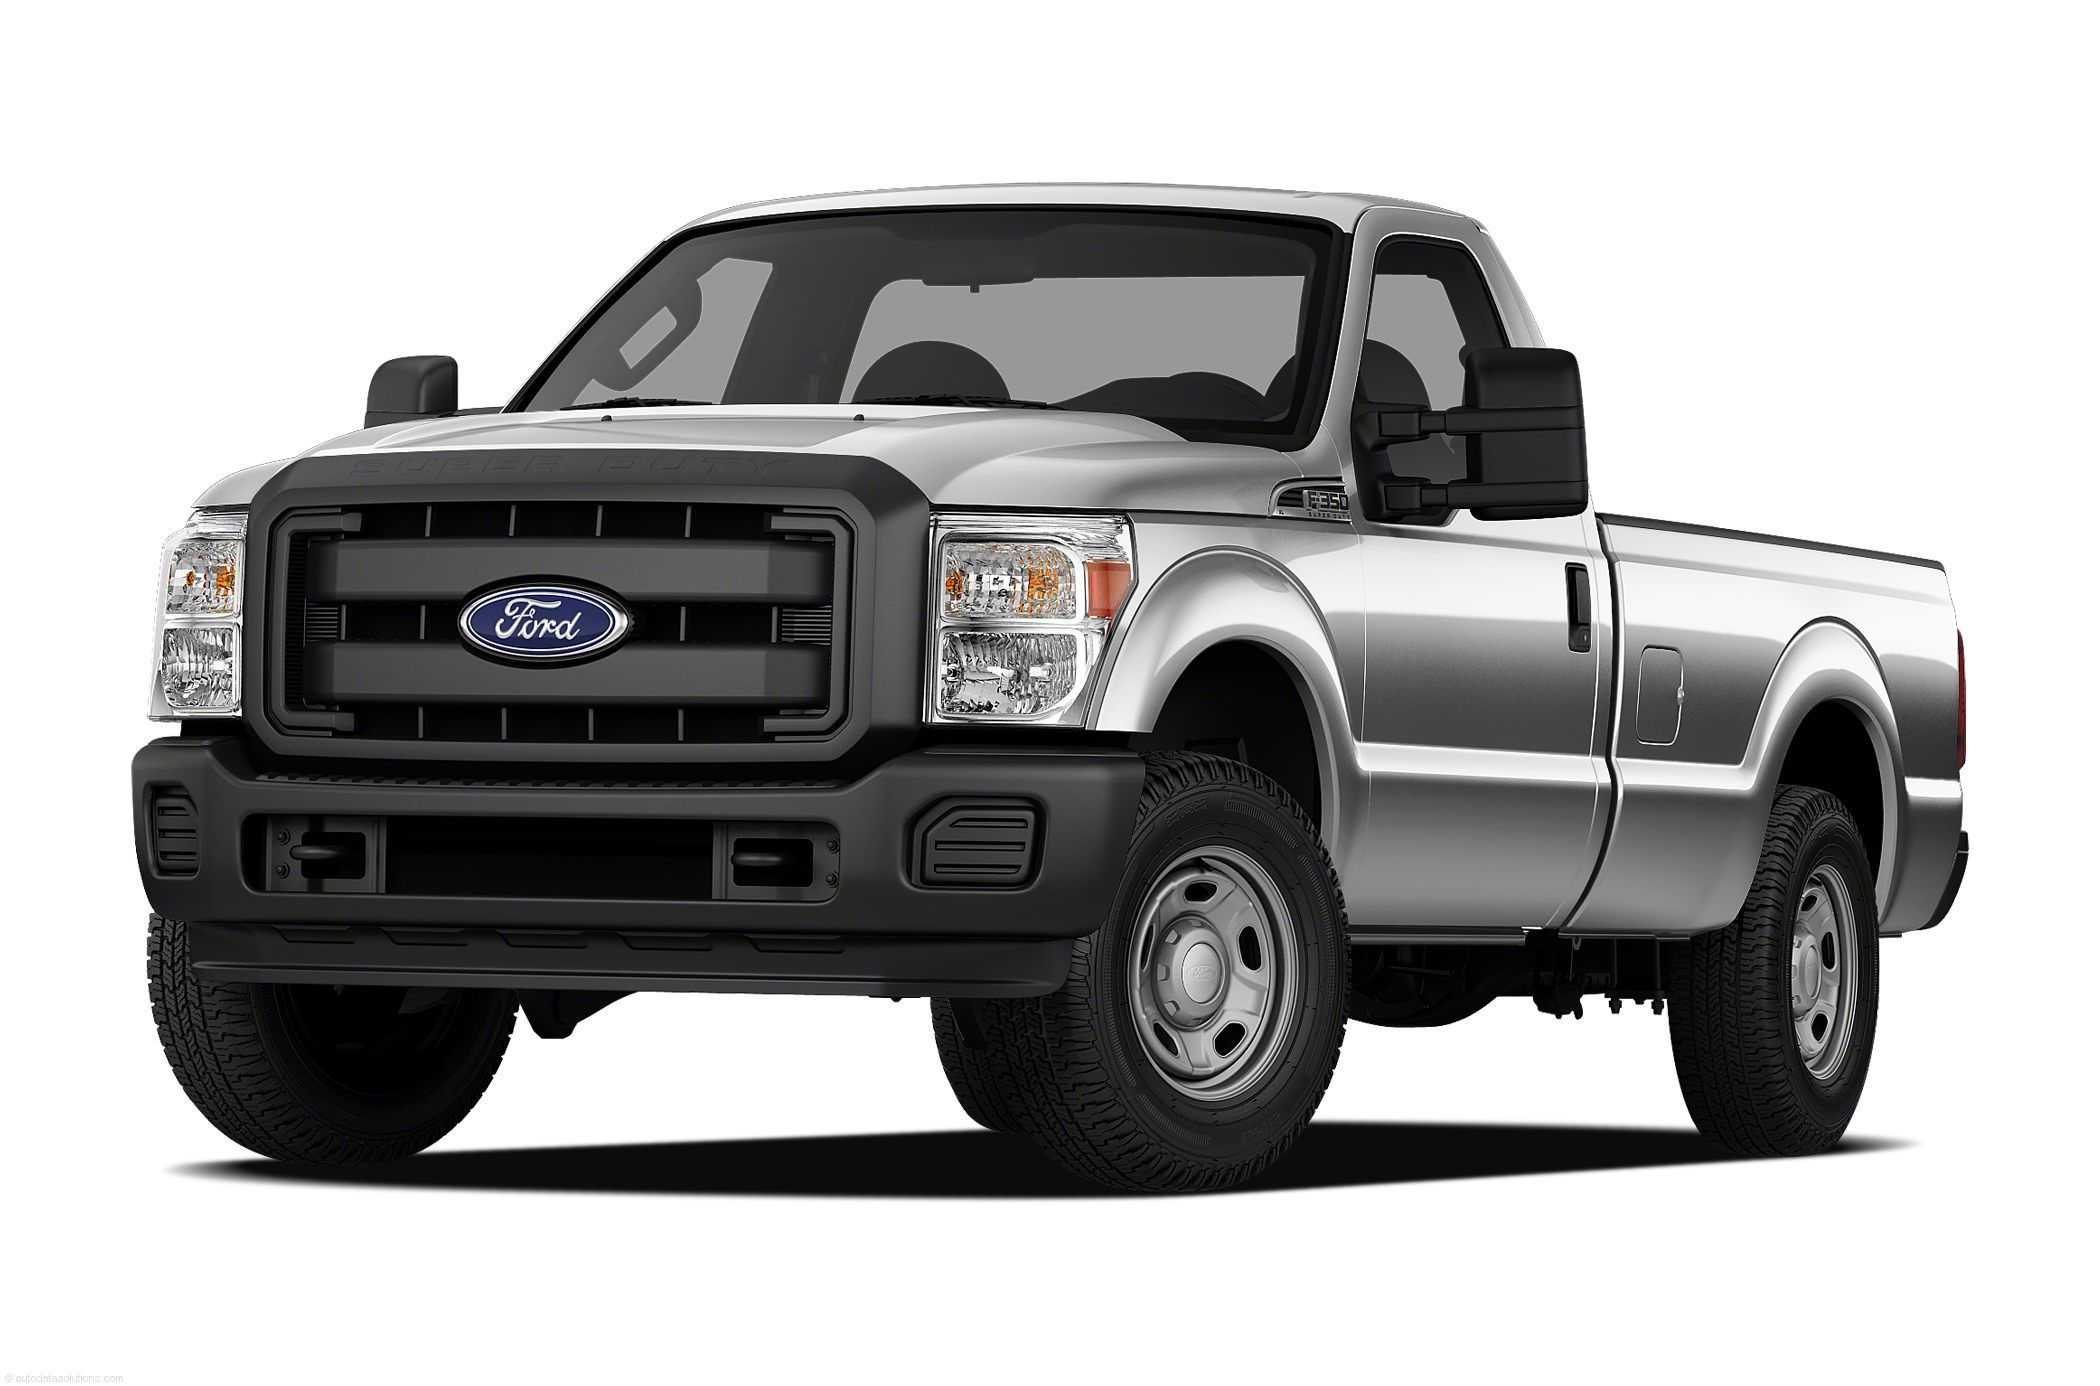 The Ford Super Duty is a line of trucks (over 8,500 lb